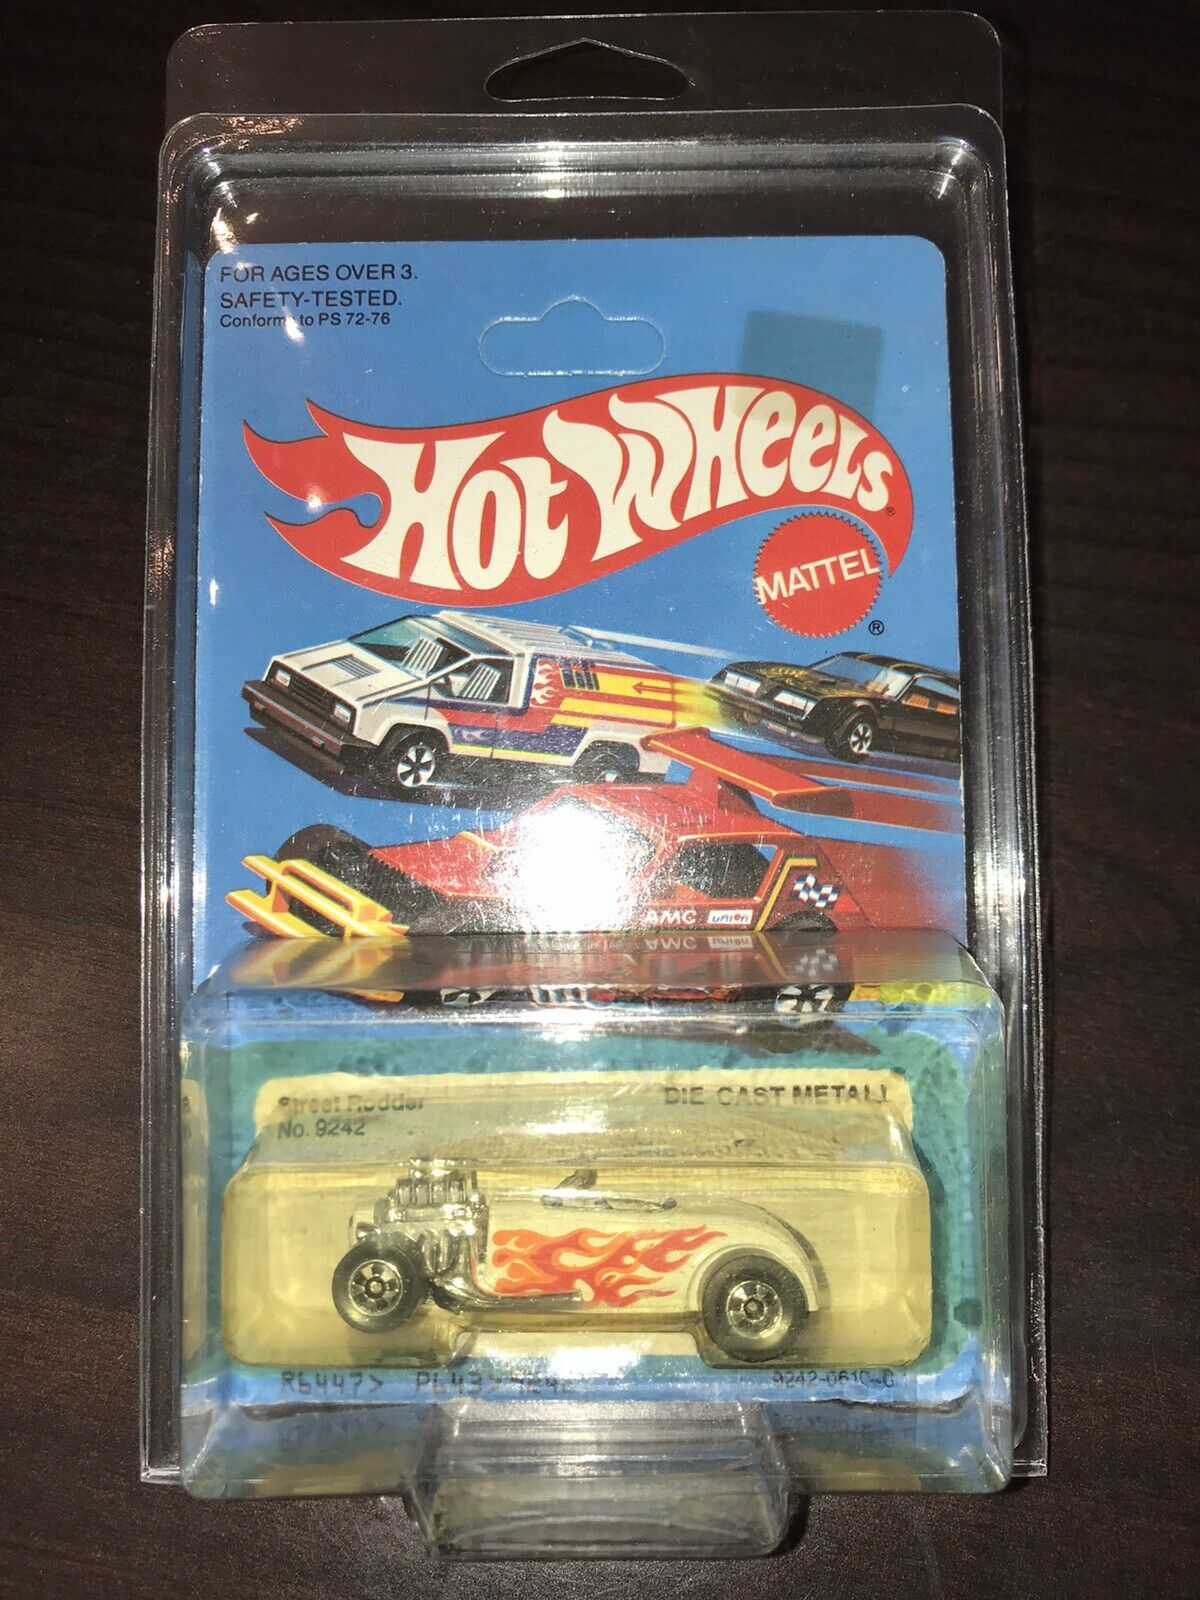 Hot Wheels 1979 Street Rodder Weiß Flames  No price Tag Unpunched Protecto 9242